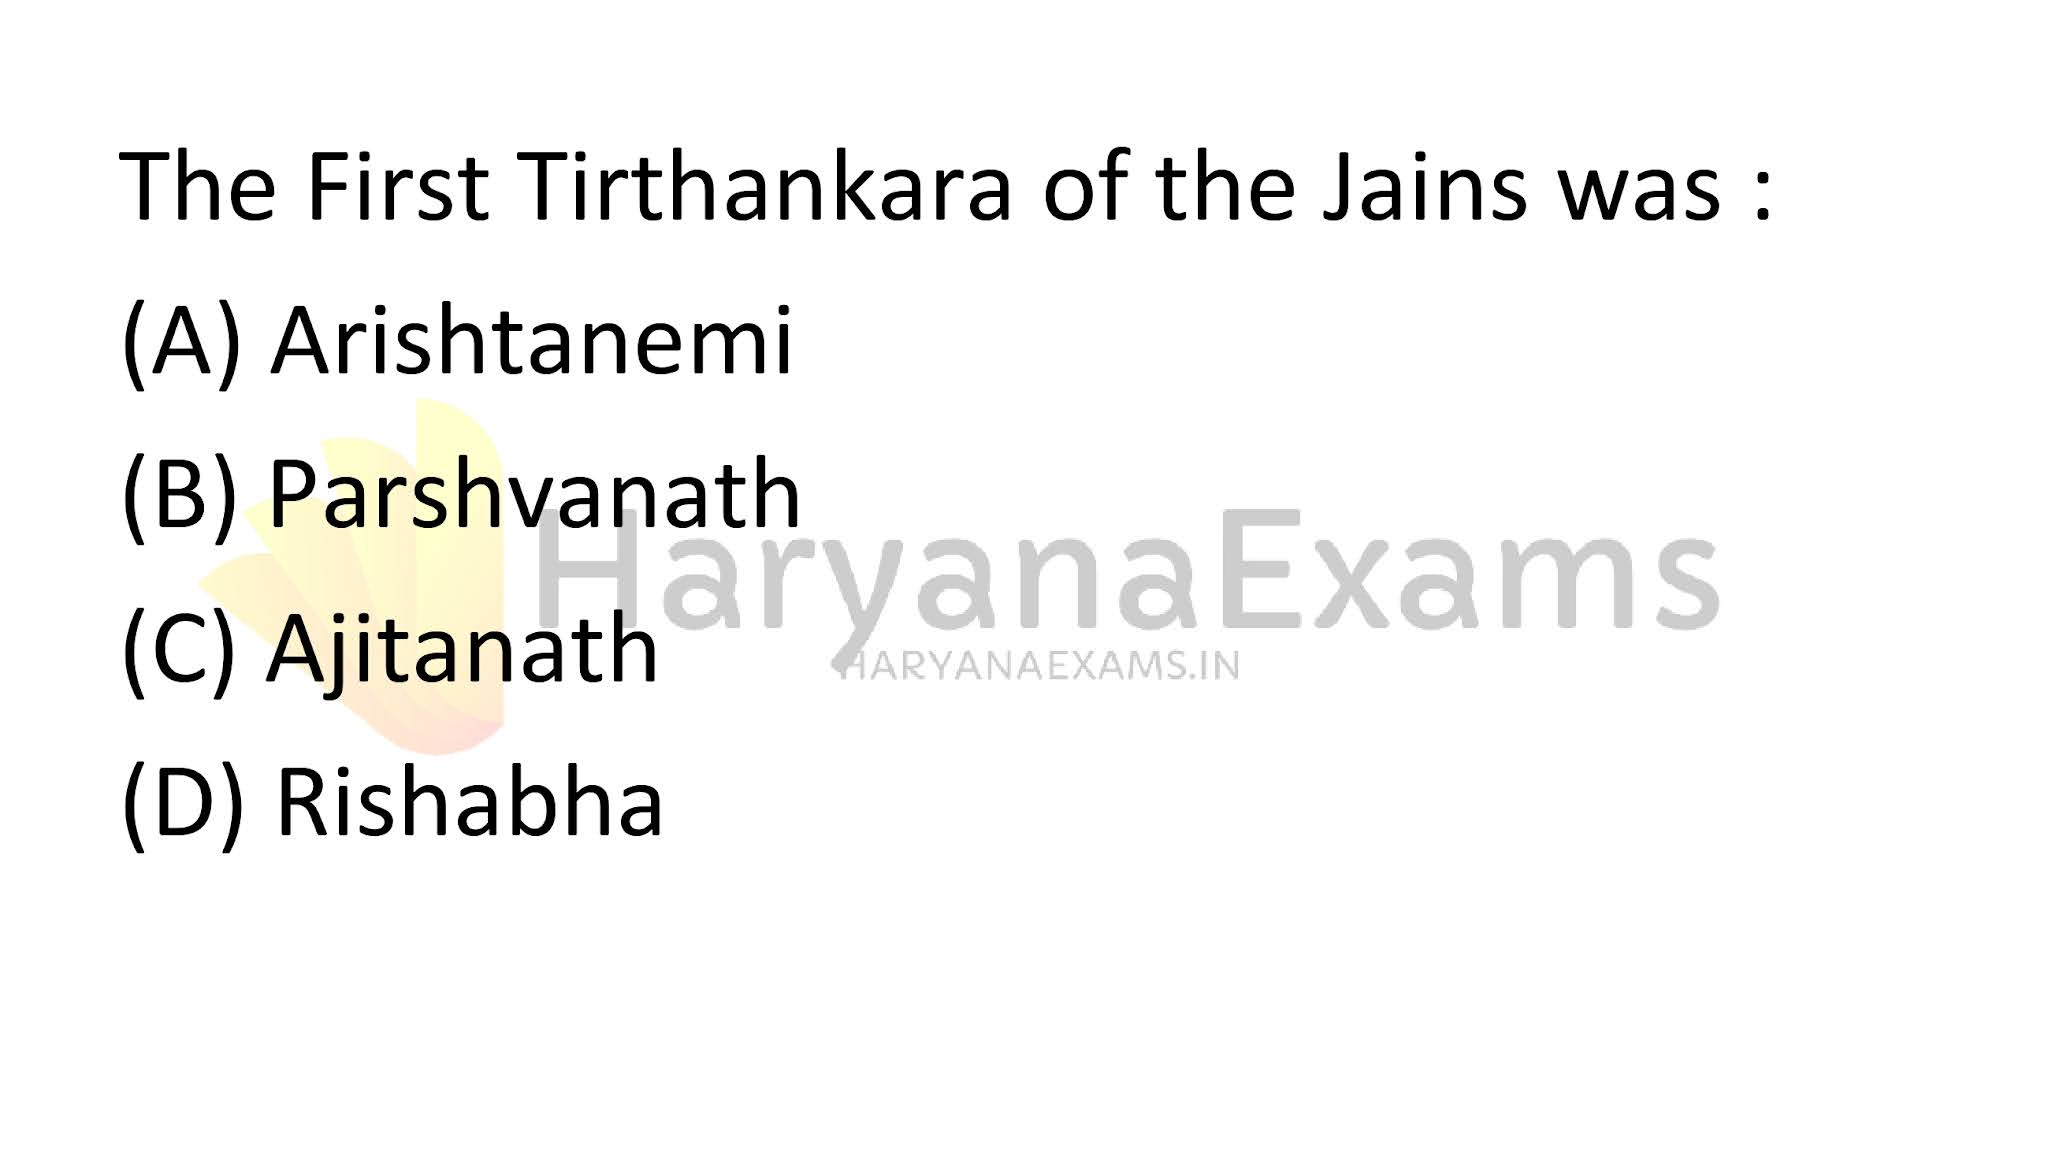 The First Tirthankara of the Jains was :